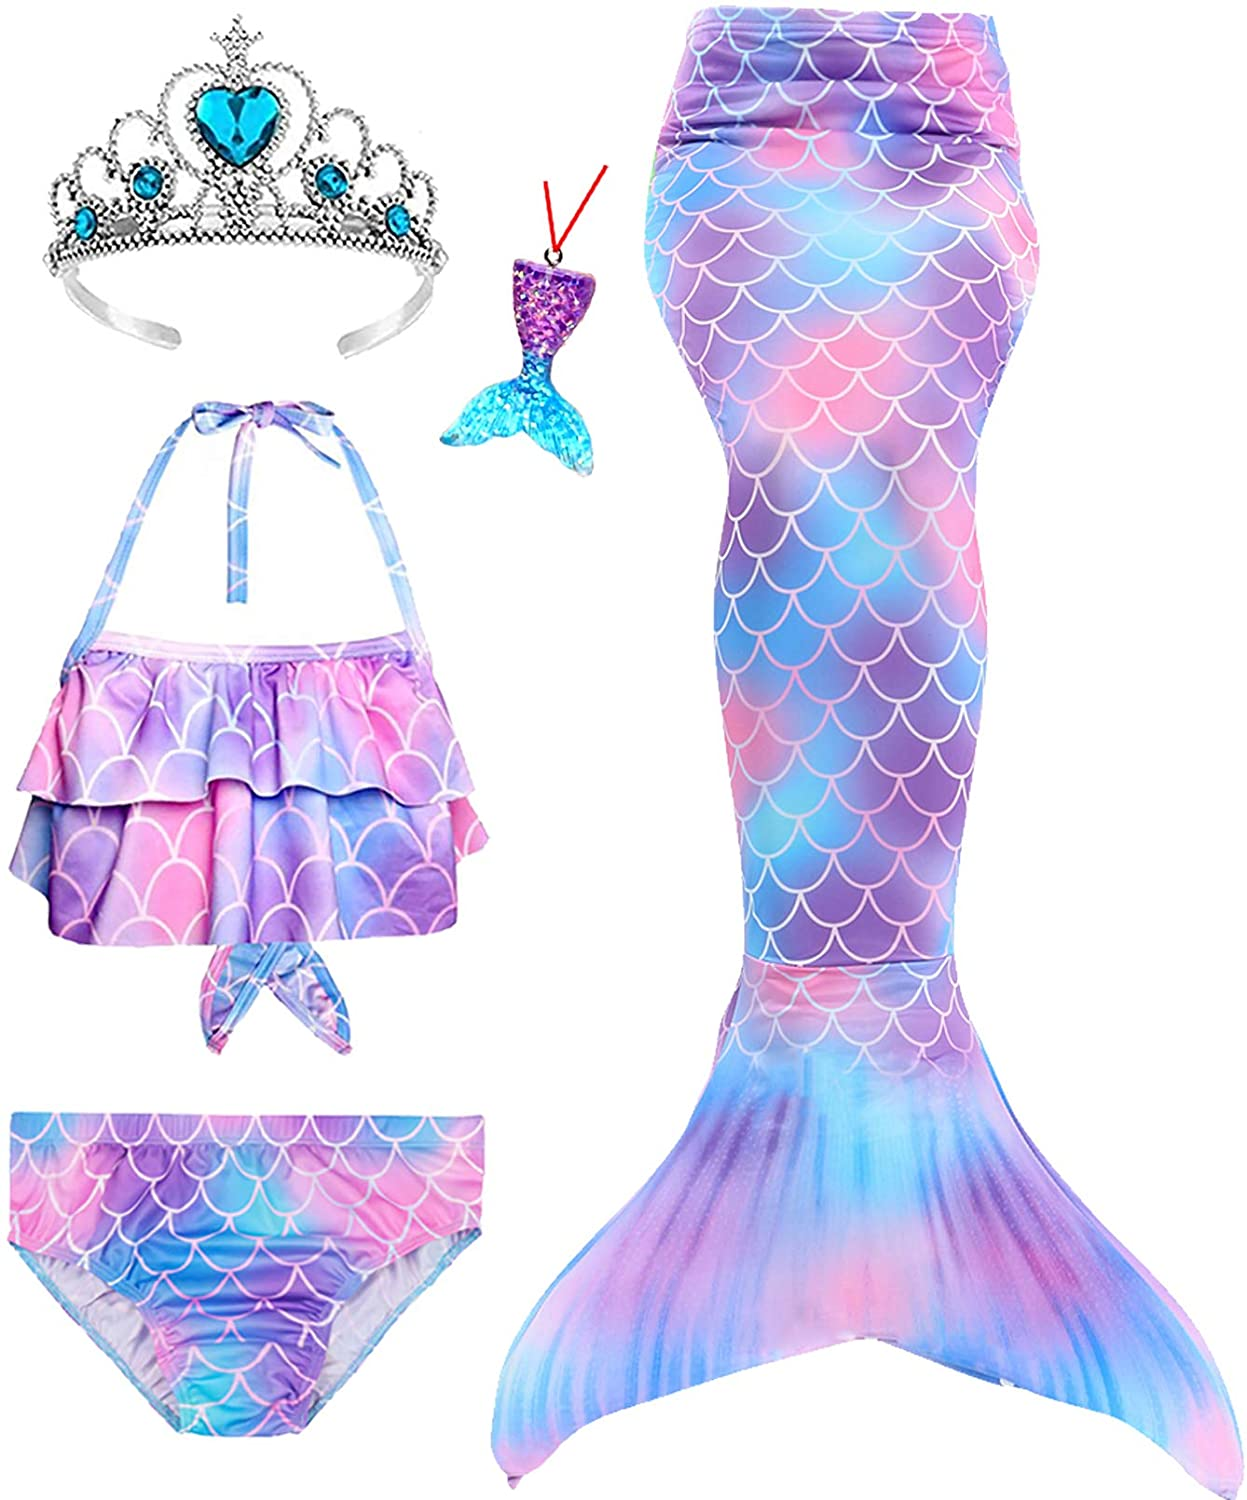 5Pcs Mermaid Spasm price Tails 70% OFF Outlet for Swimming Girls Set Suit fo Bathing Bikini